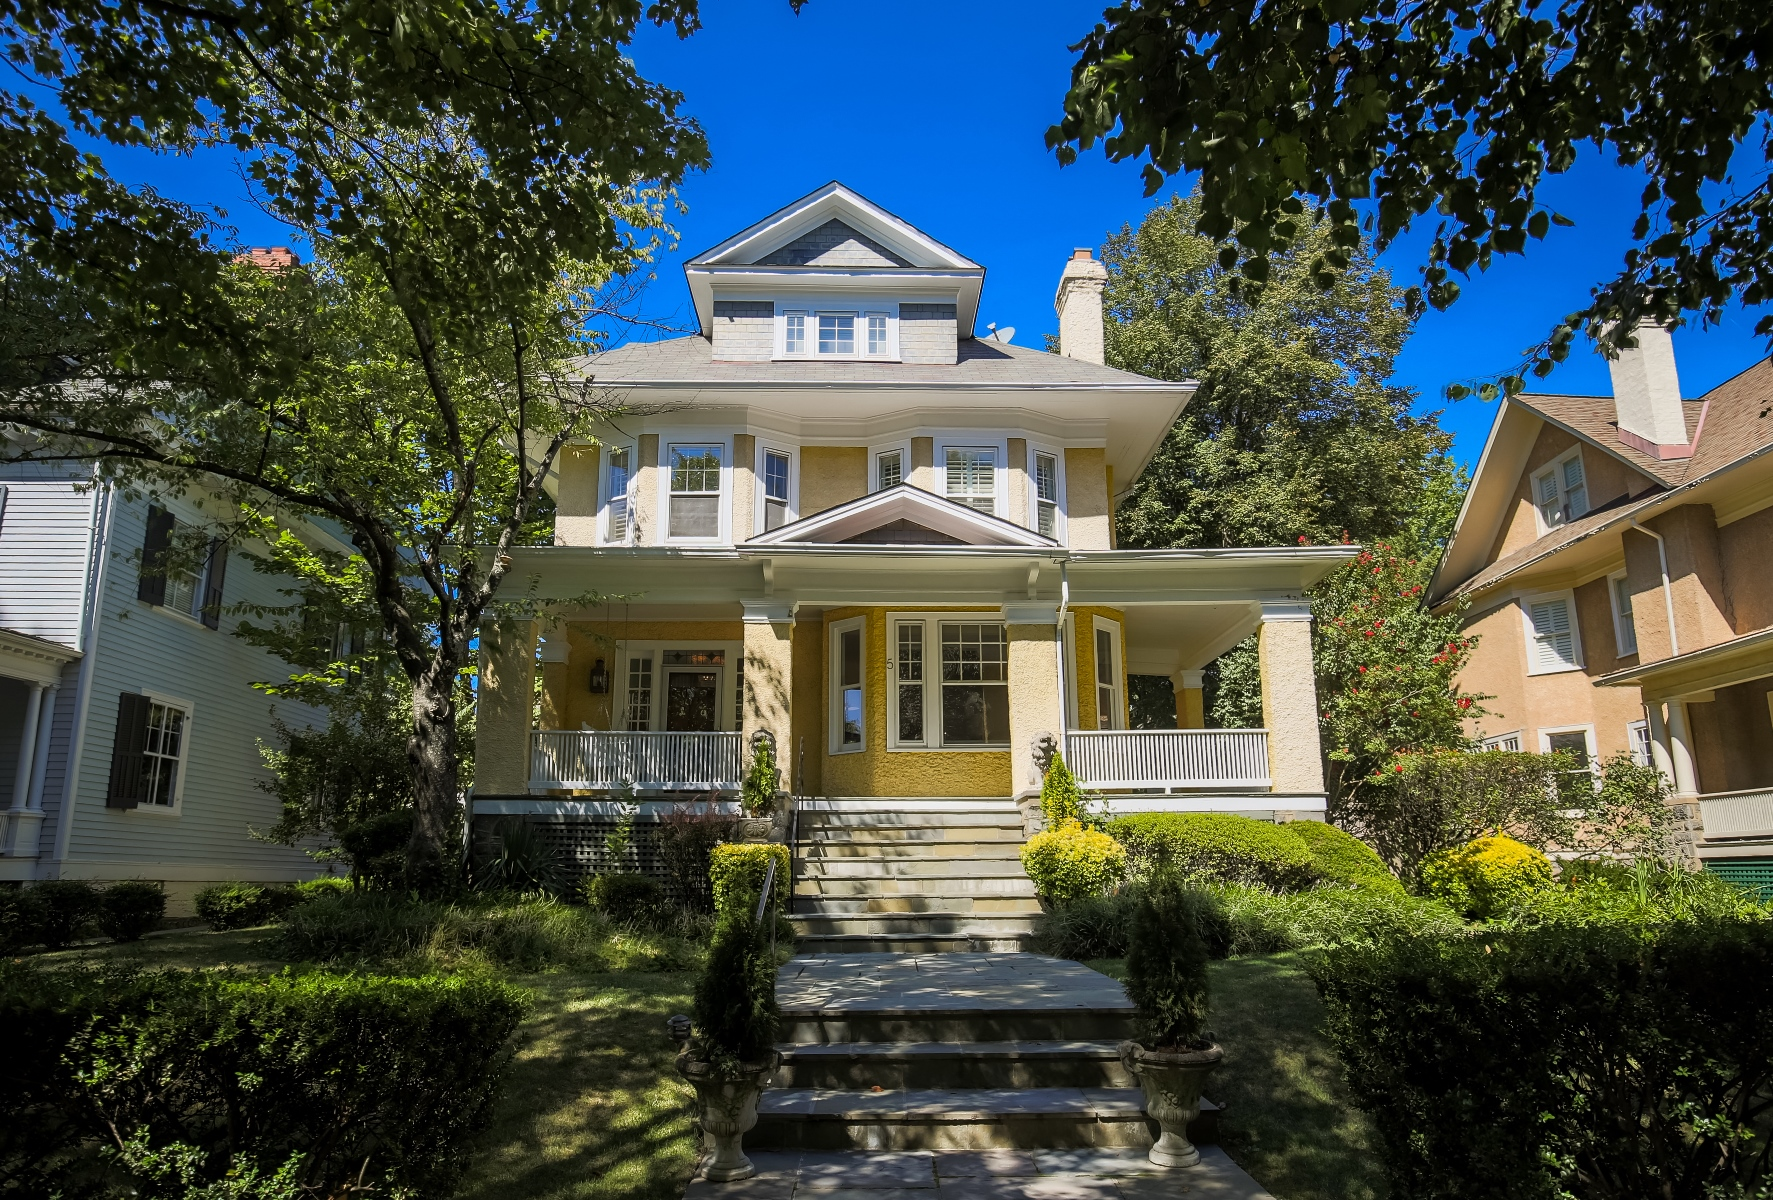 Additional photo for property listing at 5 Irving Street E, Chevy Chase  Chevy Chase, Maryland 20815 Verenigde Staten